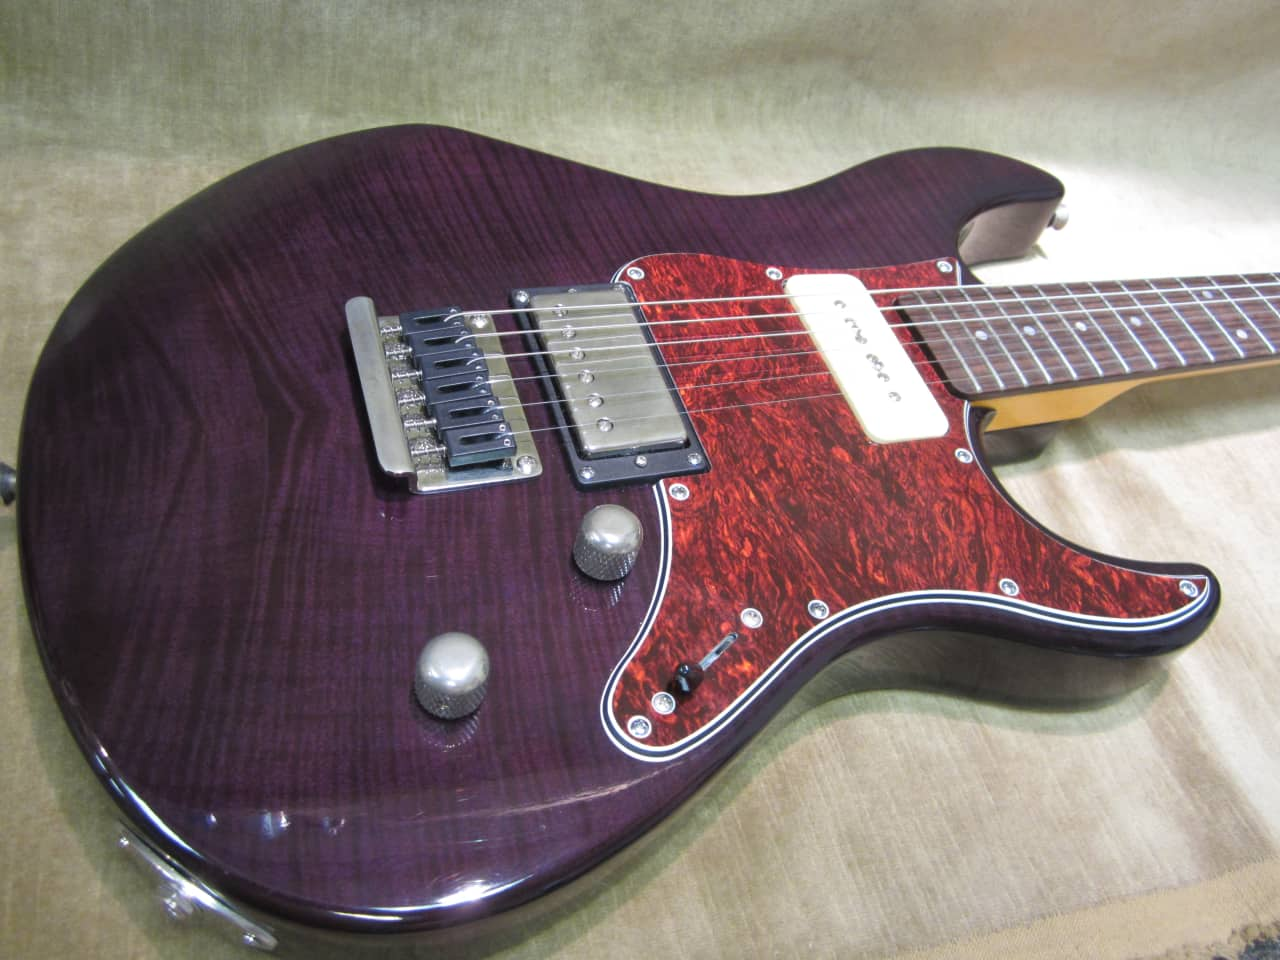 2016 yamaha pacifica 611 fm see thru purple flame top reverb. Black Bedroom Furniture Sets. Home Design Ideas